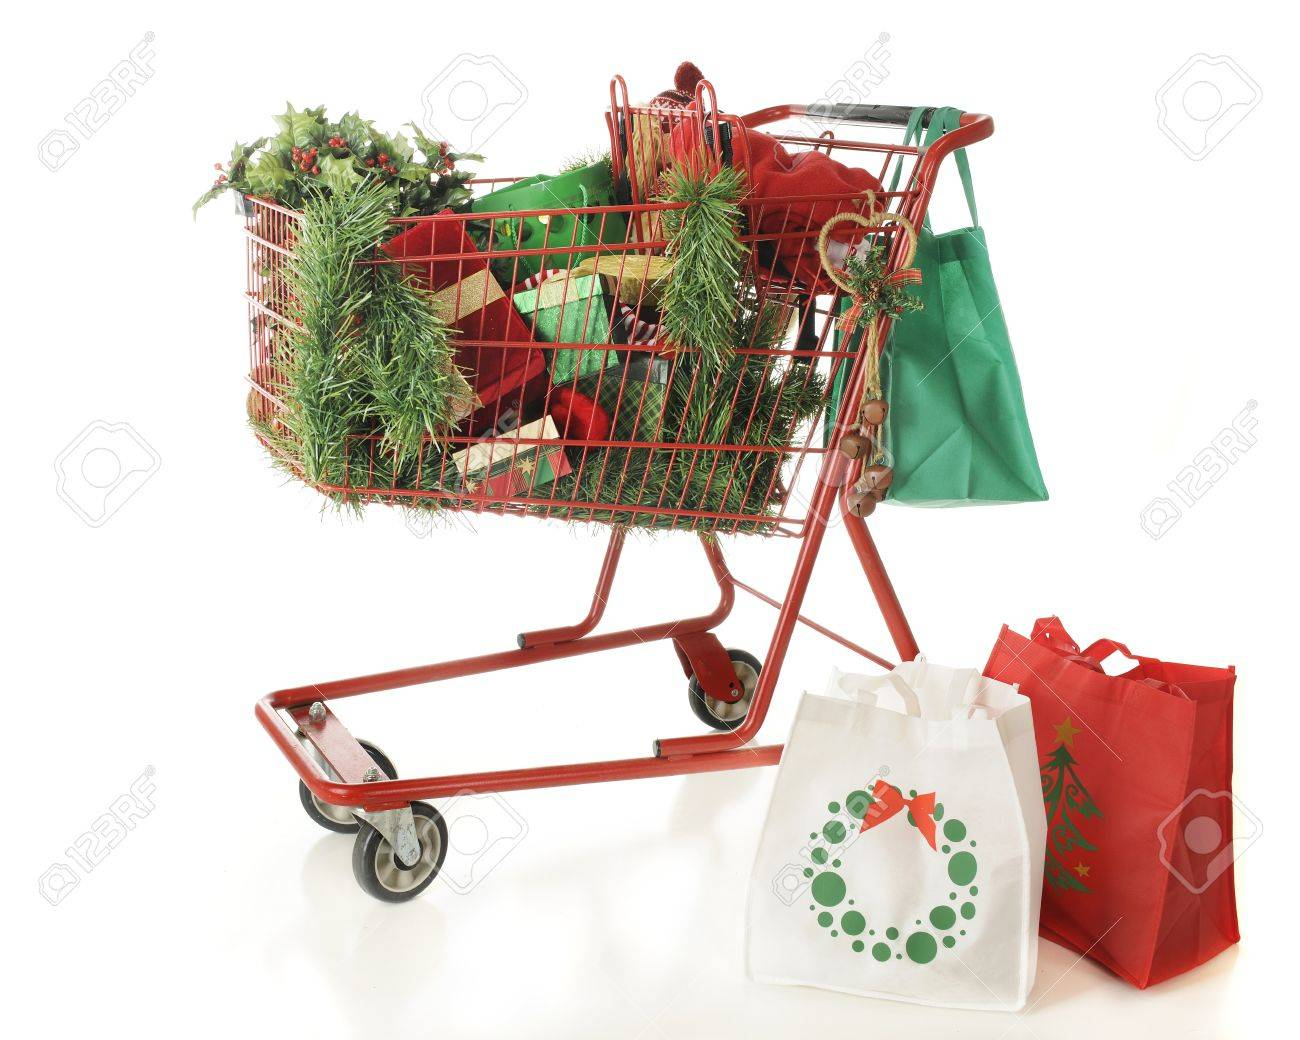 Three reuseable shopping bags and a red shopping basket filled with Christmas shopping goodies   On a white background Stock Photo - 15813107